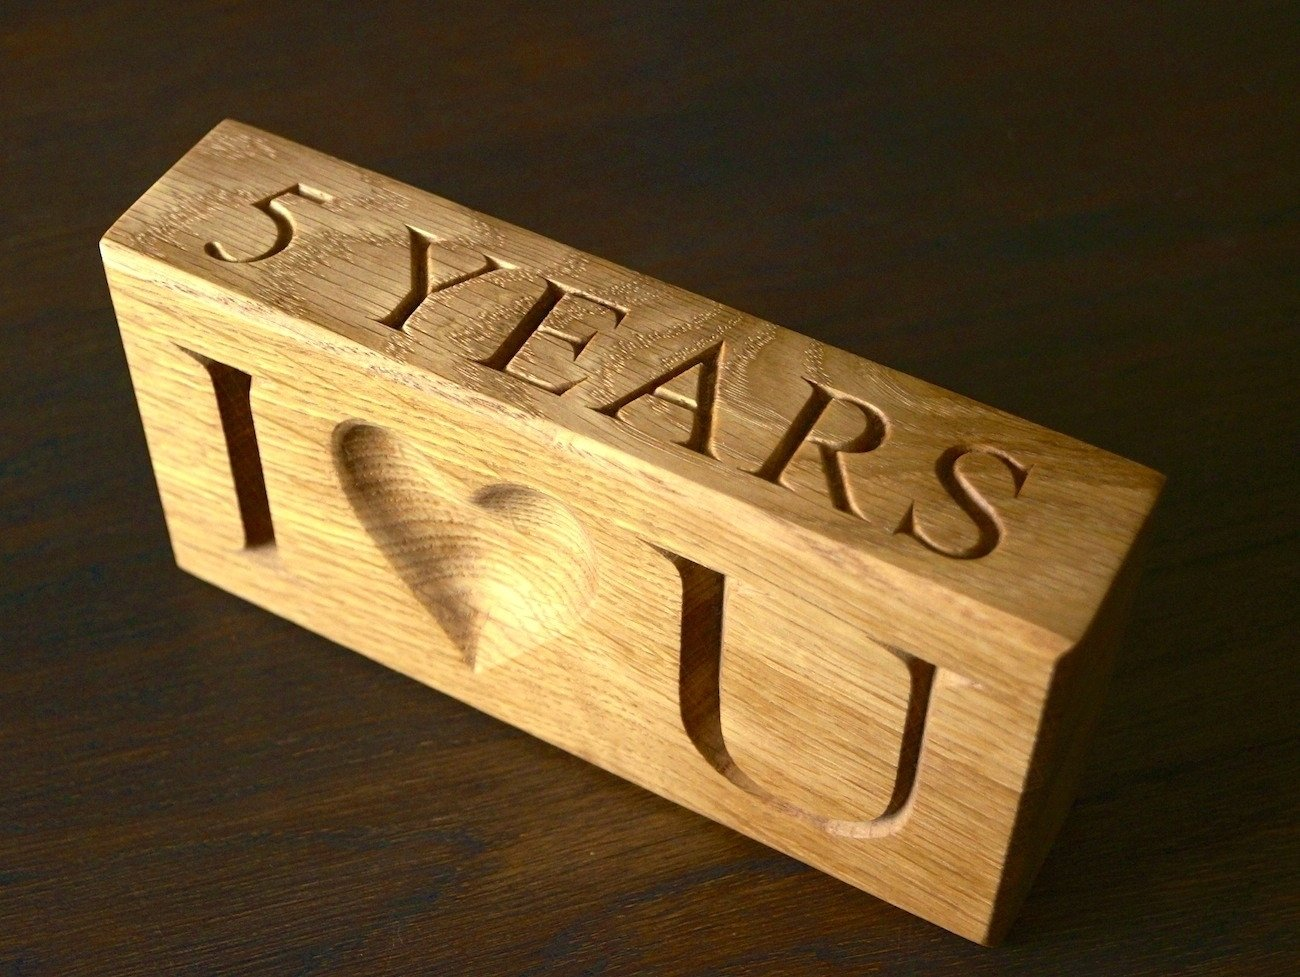 10 Stunning 5 Year Anniversary Ideas For Him 5th wedding anniversary wooden gift ideas makemesomethingspecial 2020